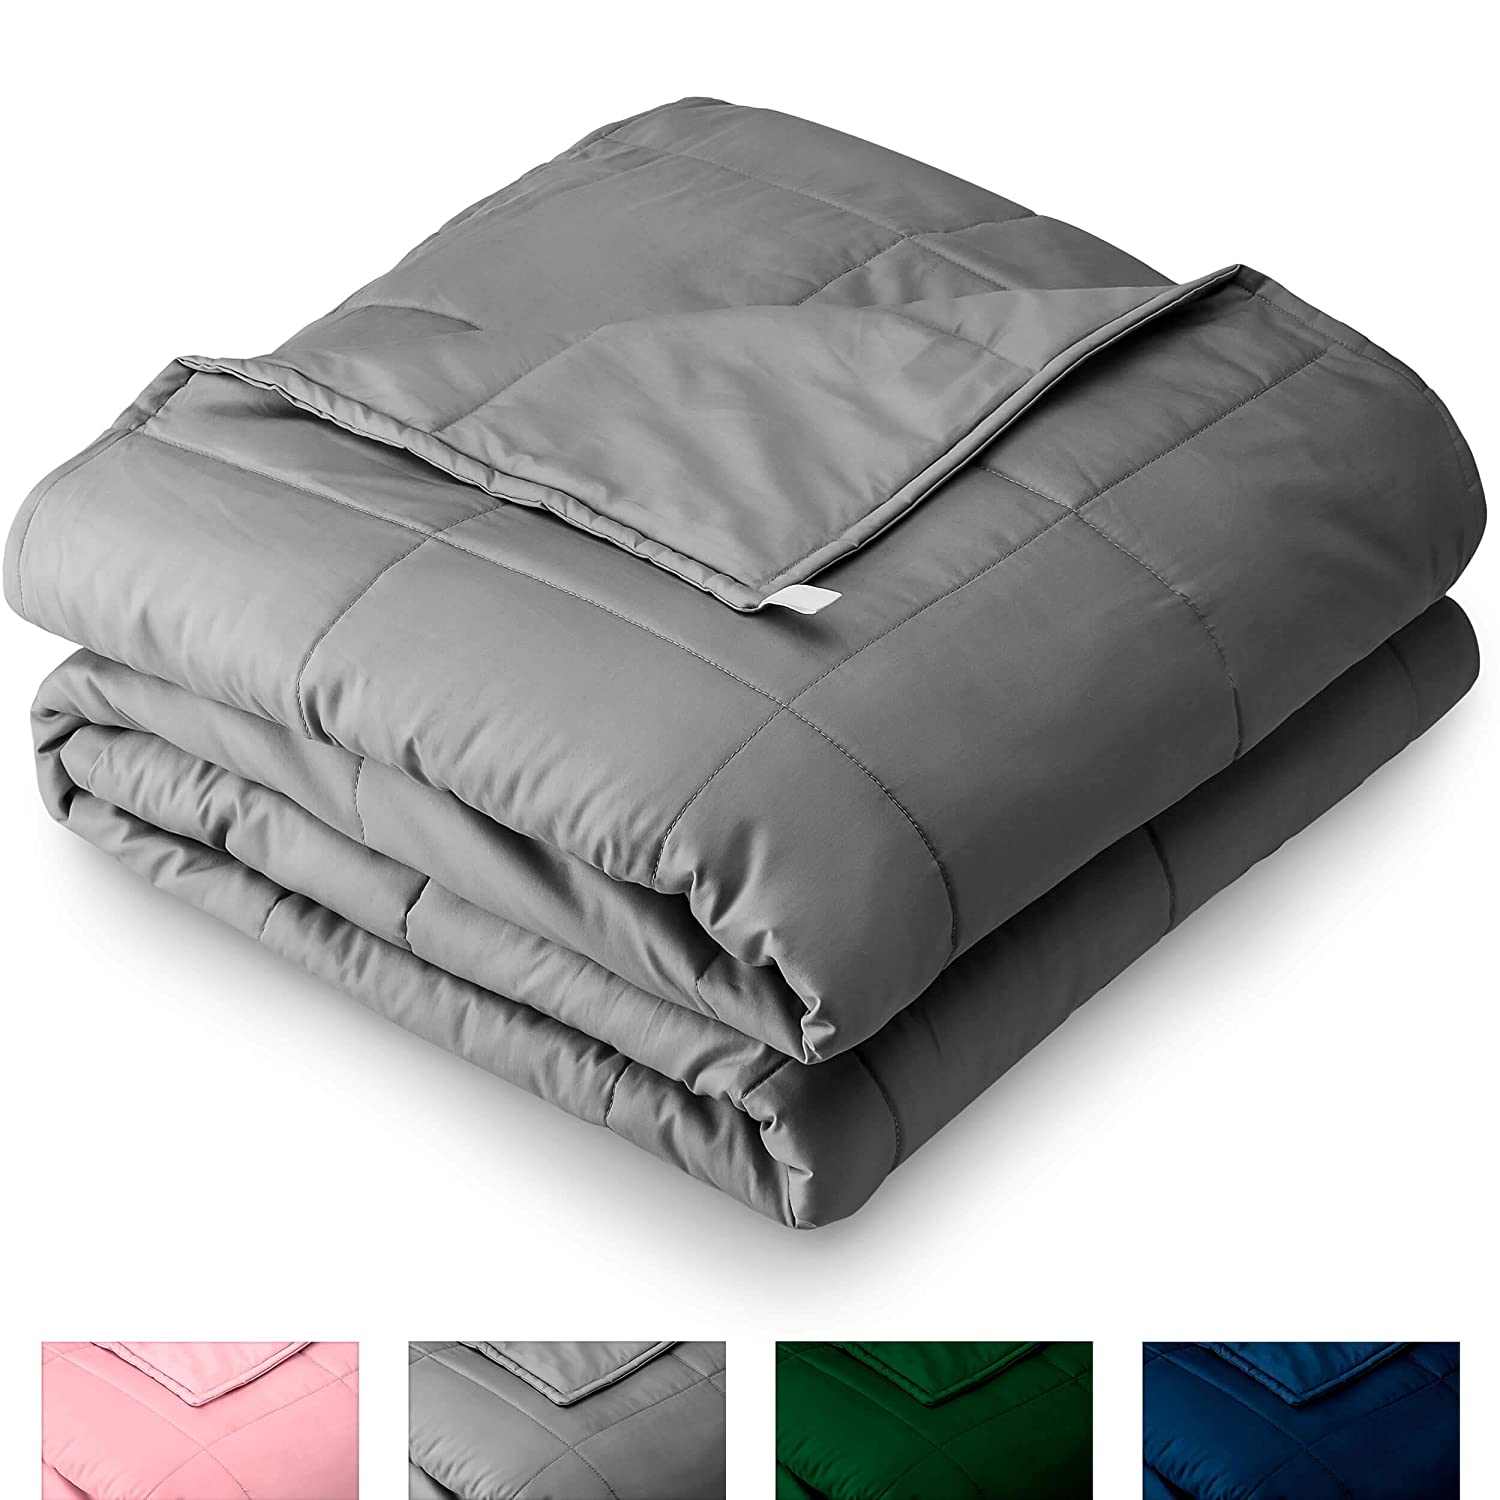 "Bare Home Weighted Blanket for Kids 10lb (40"" x 60"") - Throw Size - All-Natural 100% Cotton – Premium Heavy Blanket Nontoxic Glass Beads (Grey, 40""x60"")"